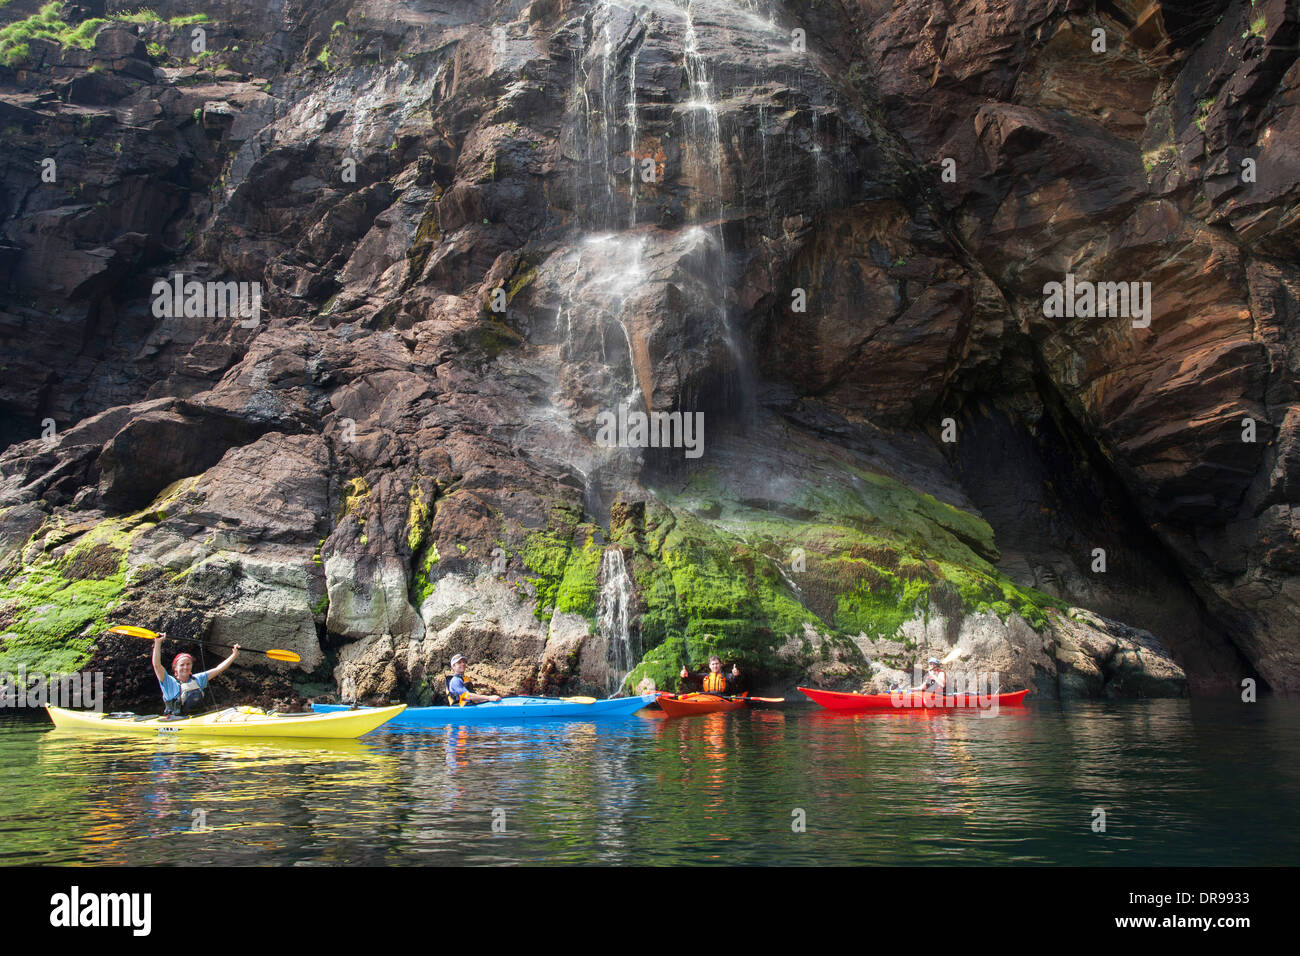 Sea kayaking beneath a waterfall along the Slieve League cliffs, County Donegal, Ireland. - Stock Image